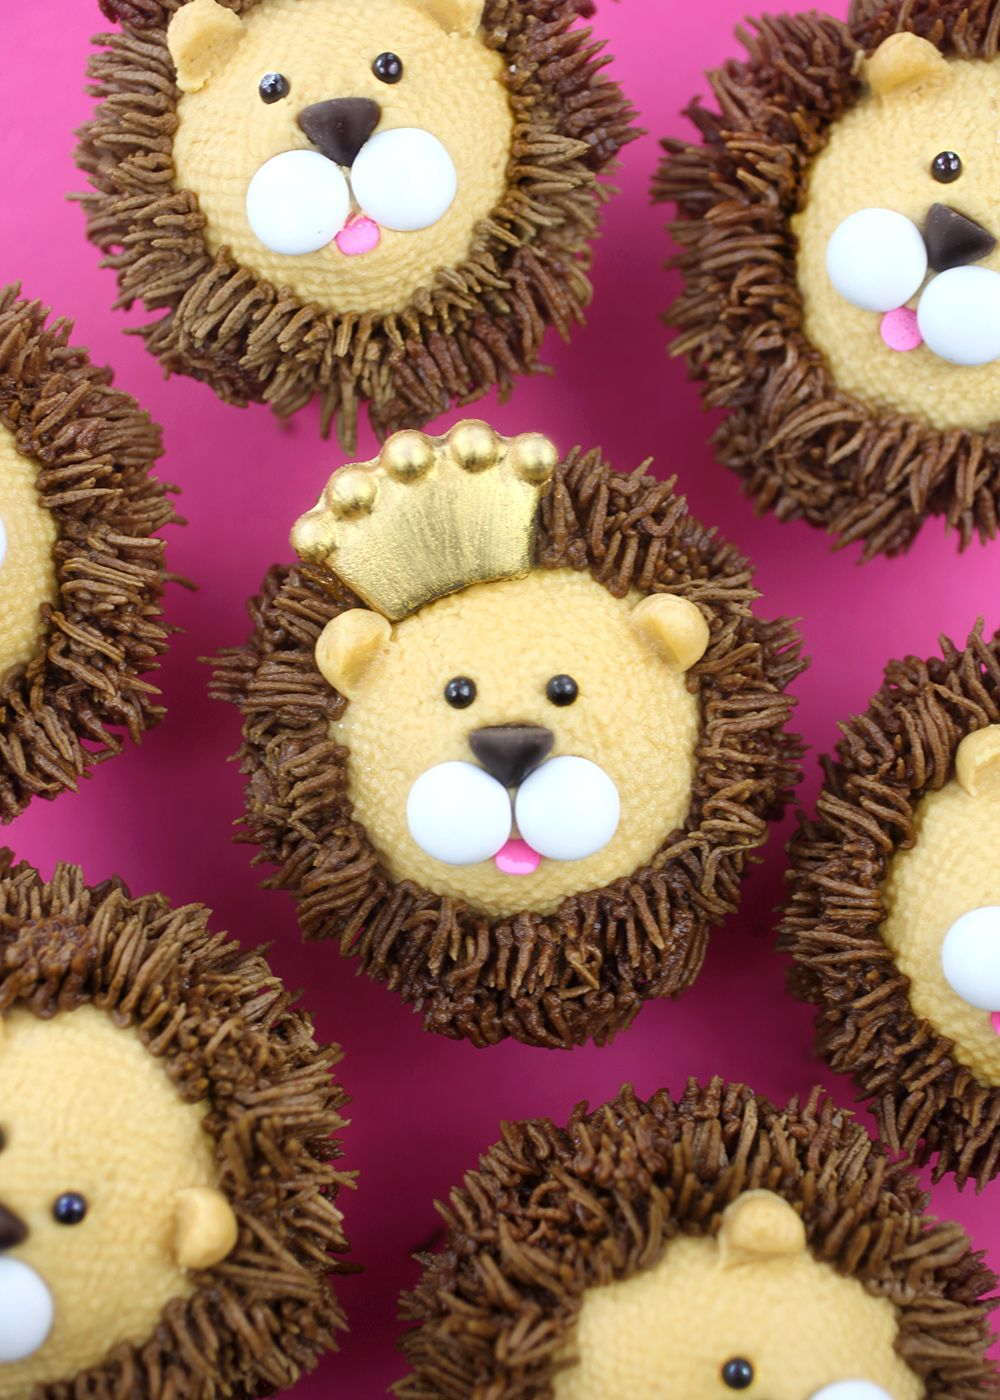 Cours Décoration Gateau Royally Cute Lion Cupcakes Bakerella I Love Baking V